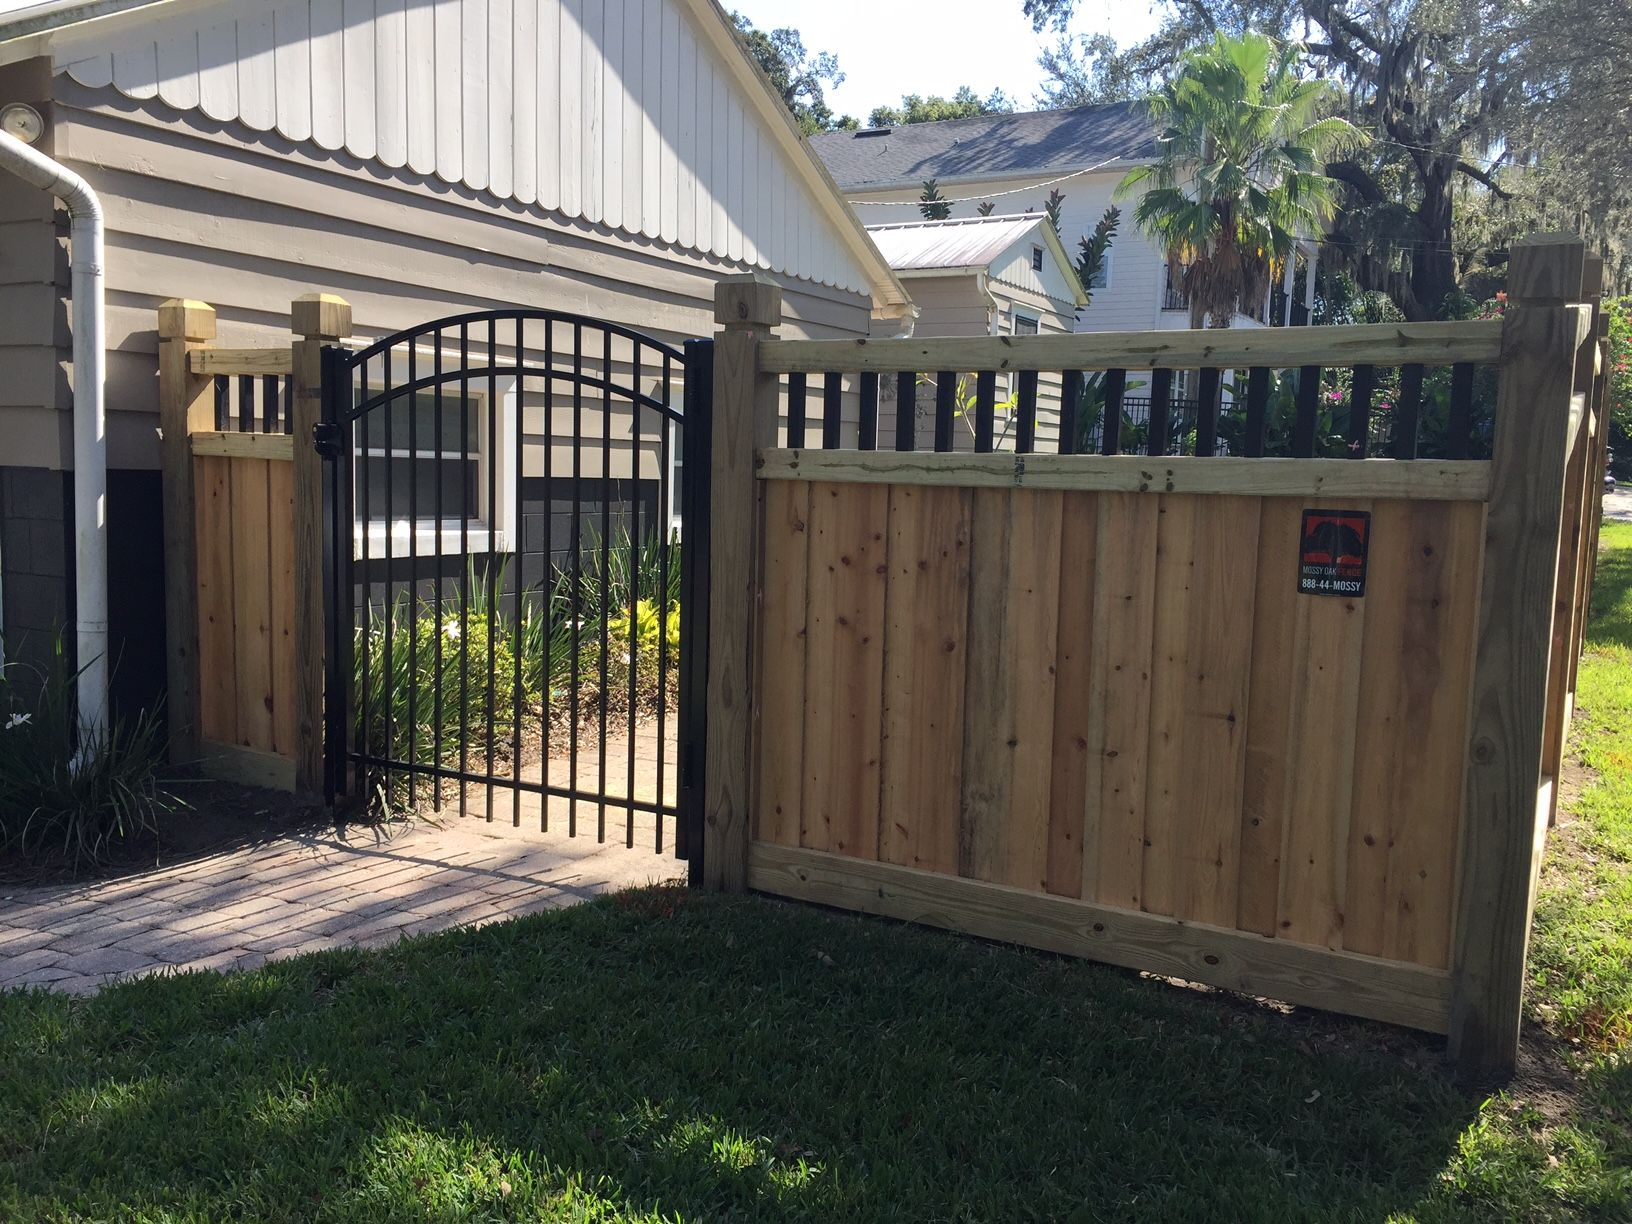 Custom Wood Privacy Fence And Scalloped Aluminum Gate Designed And